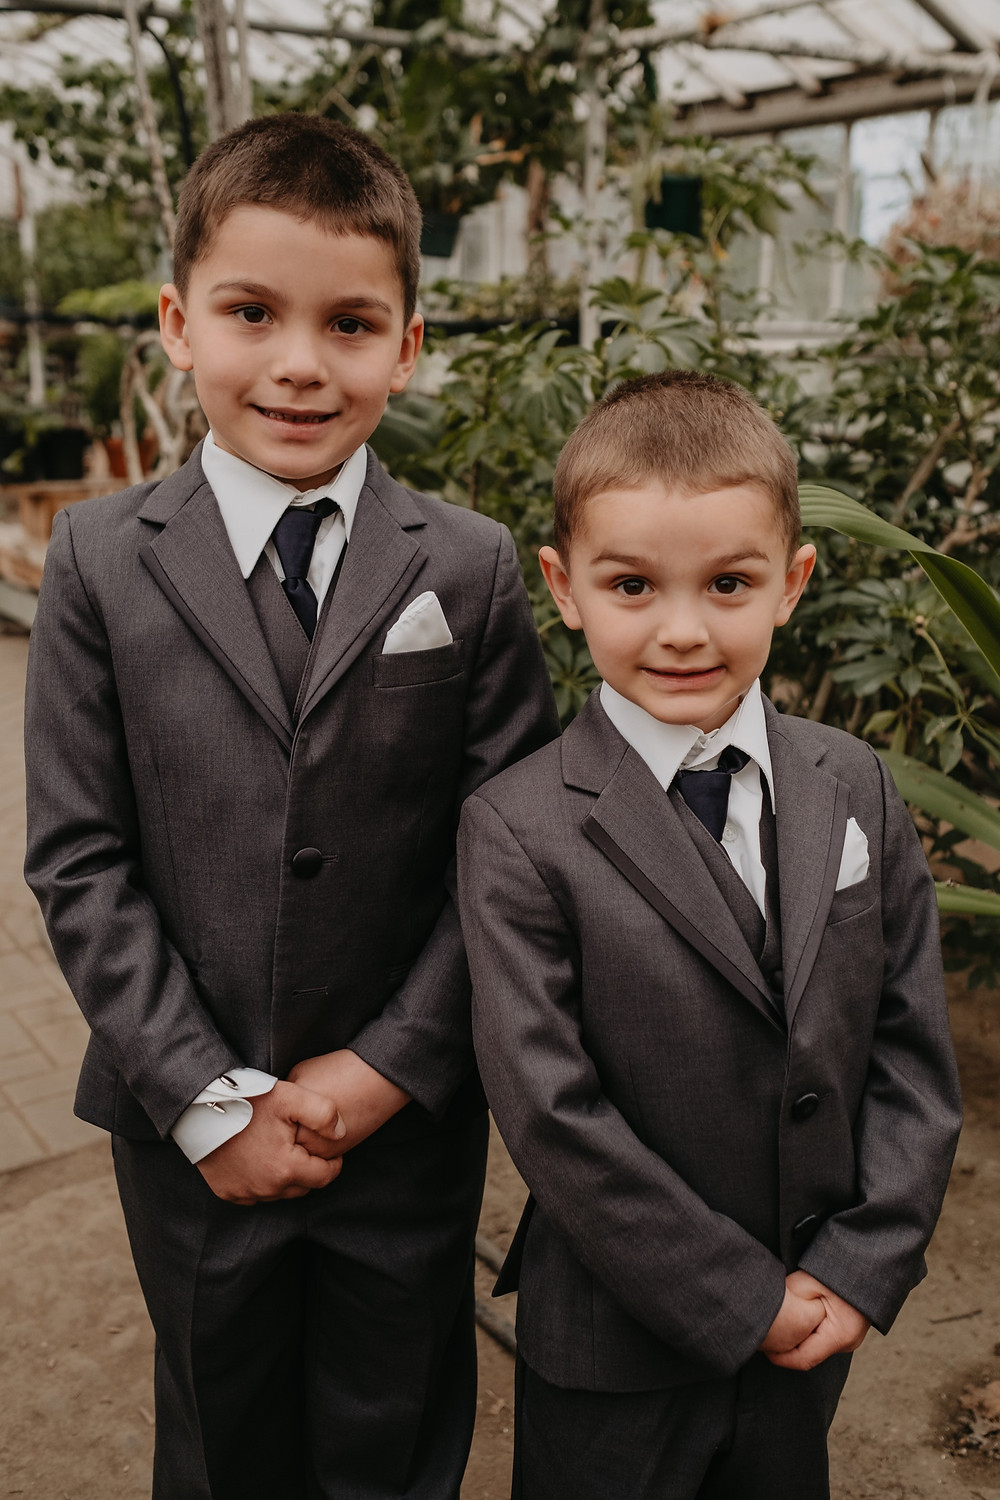 Boys in suits at Graye's Greenhouse wedding.